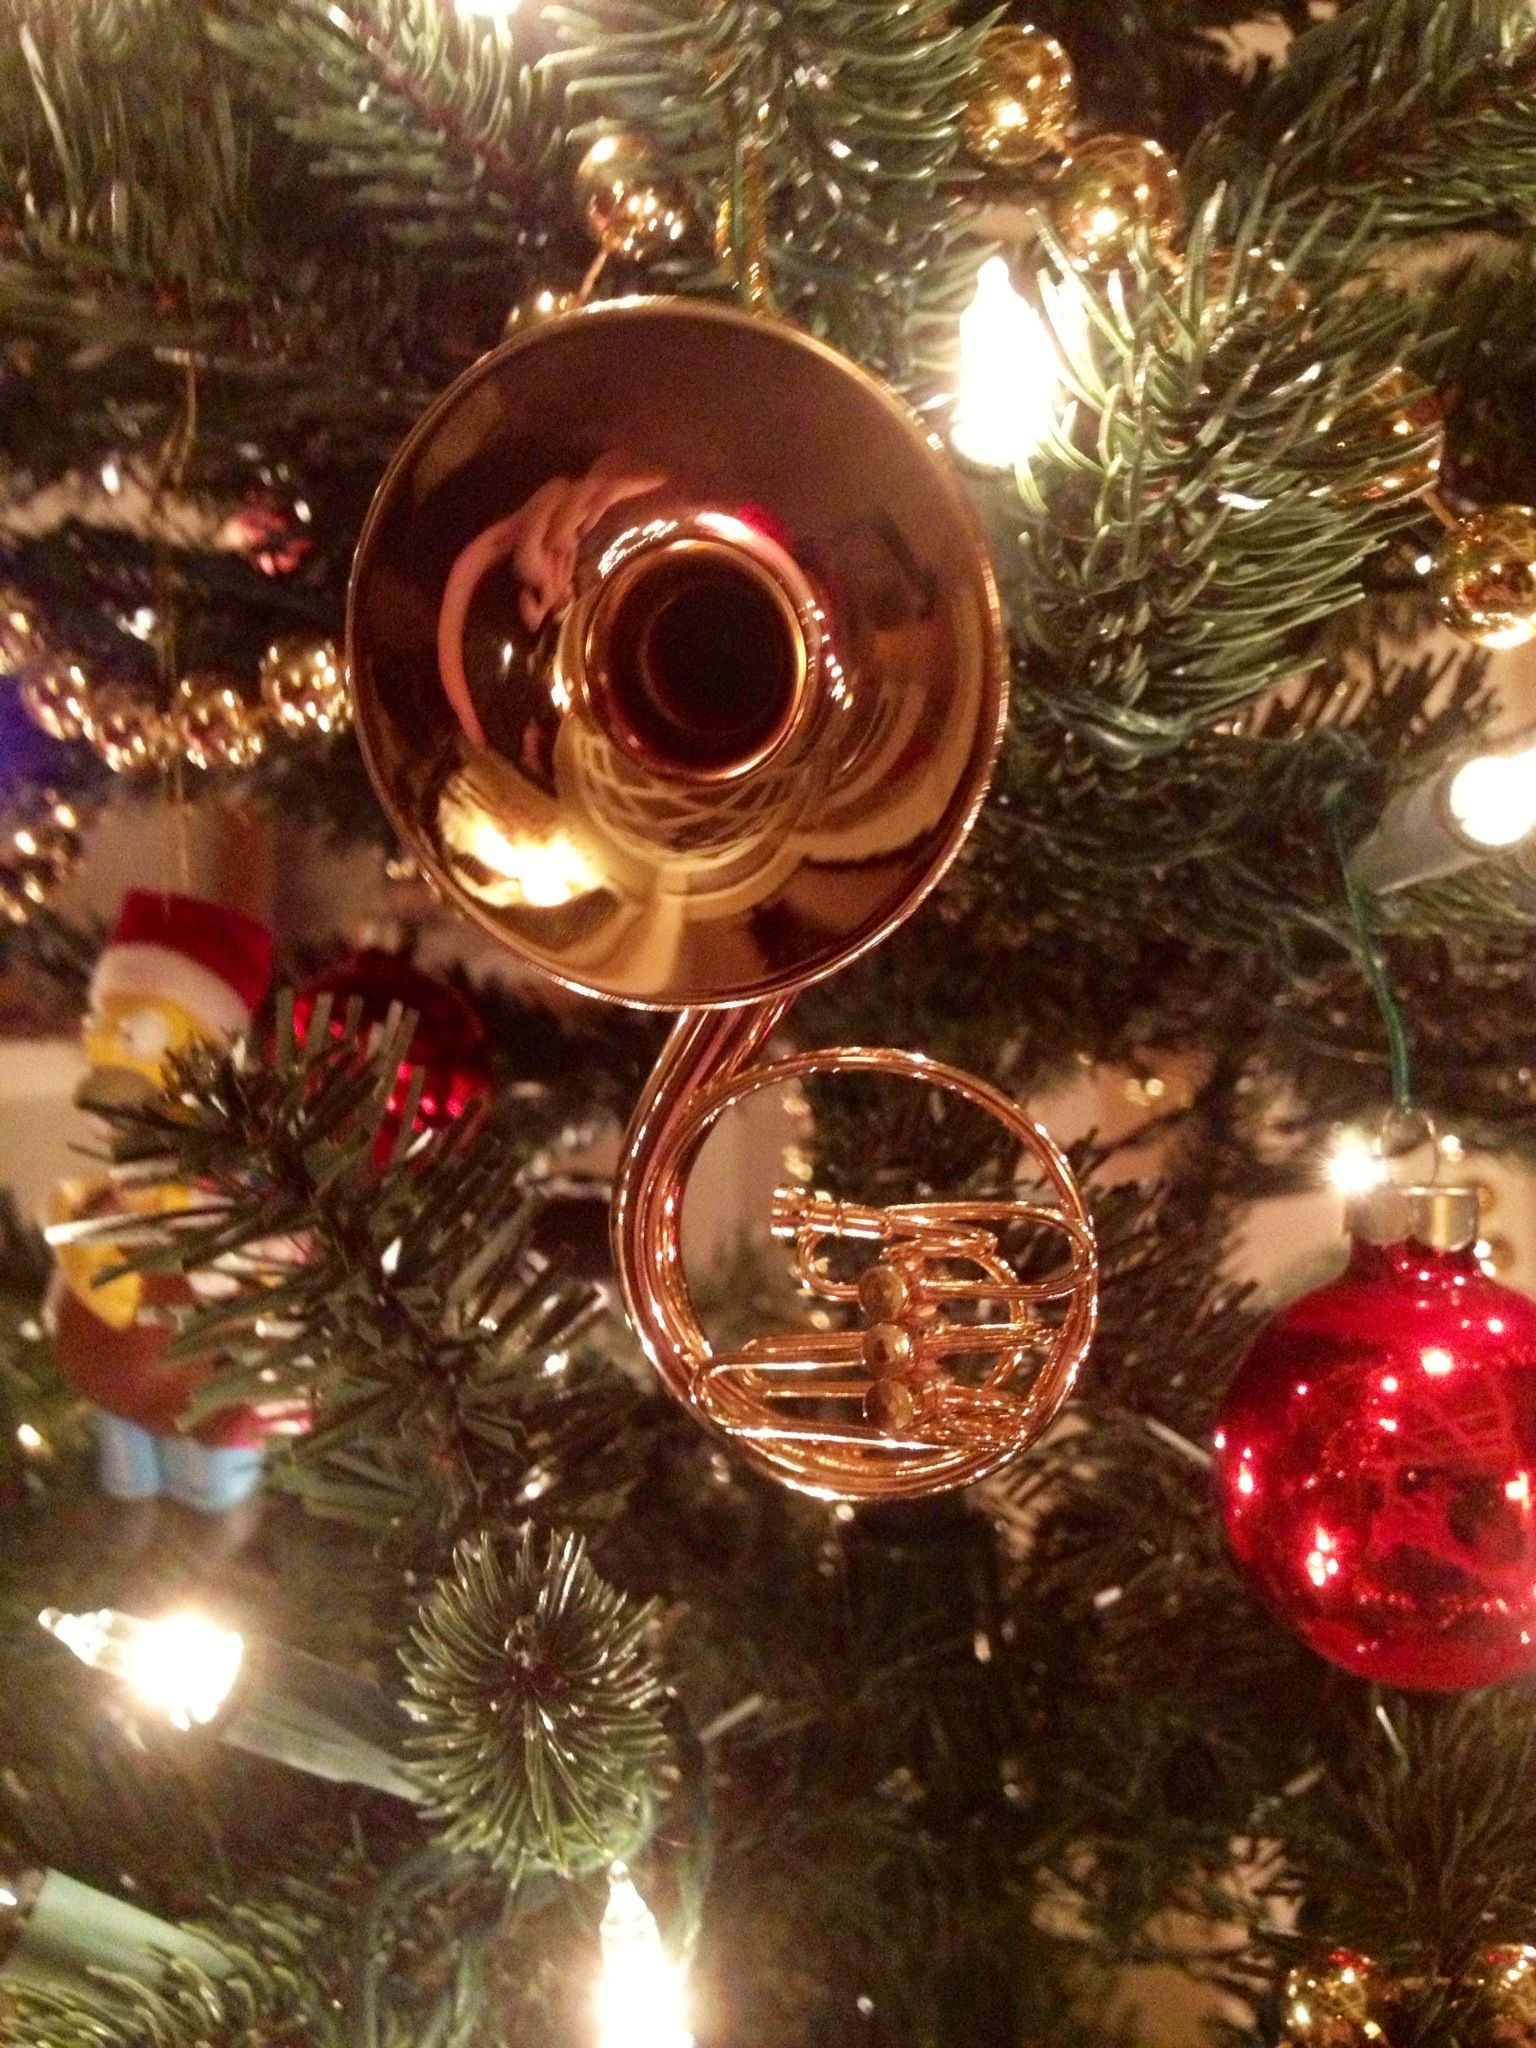 Sousaphone christmas ornament i want one so bad http